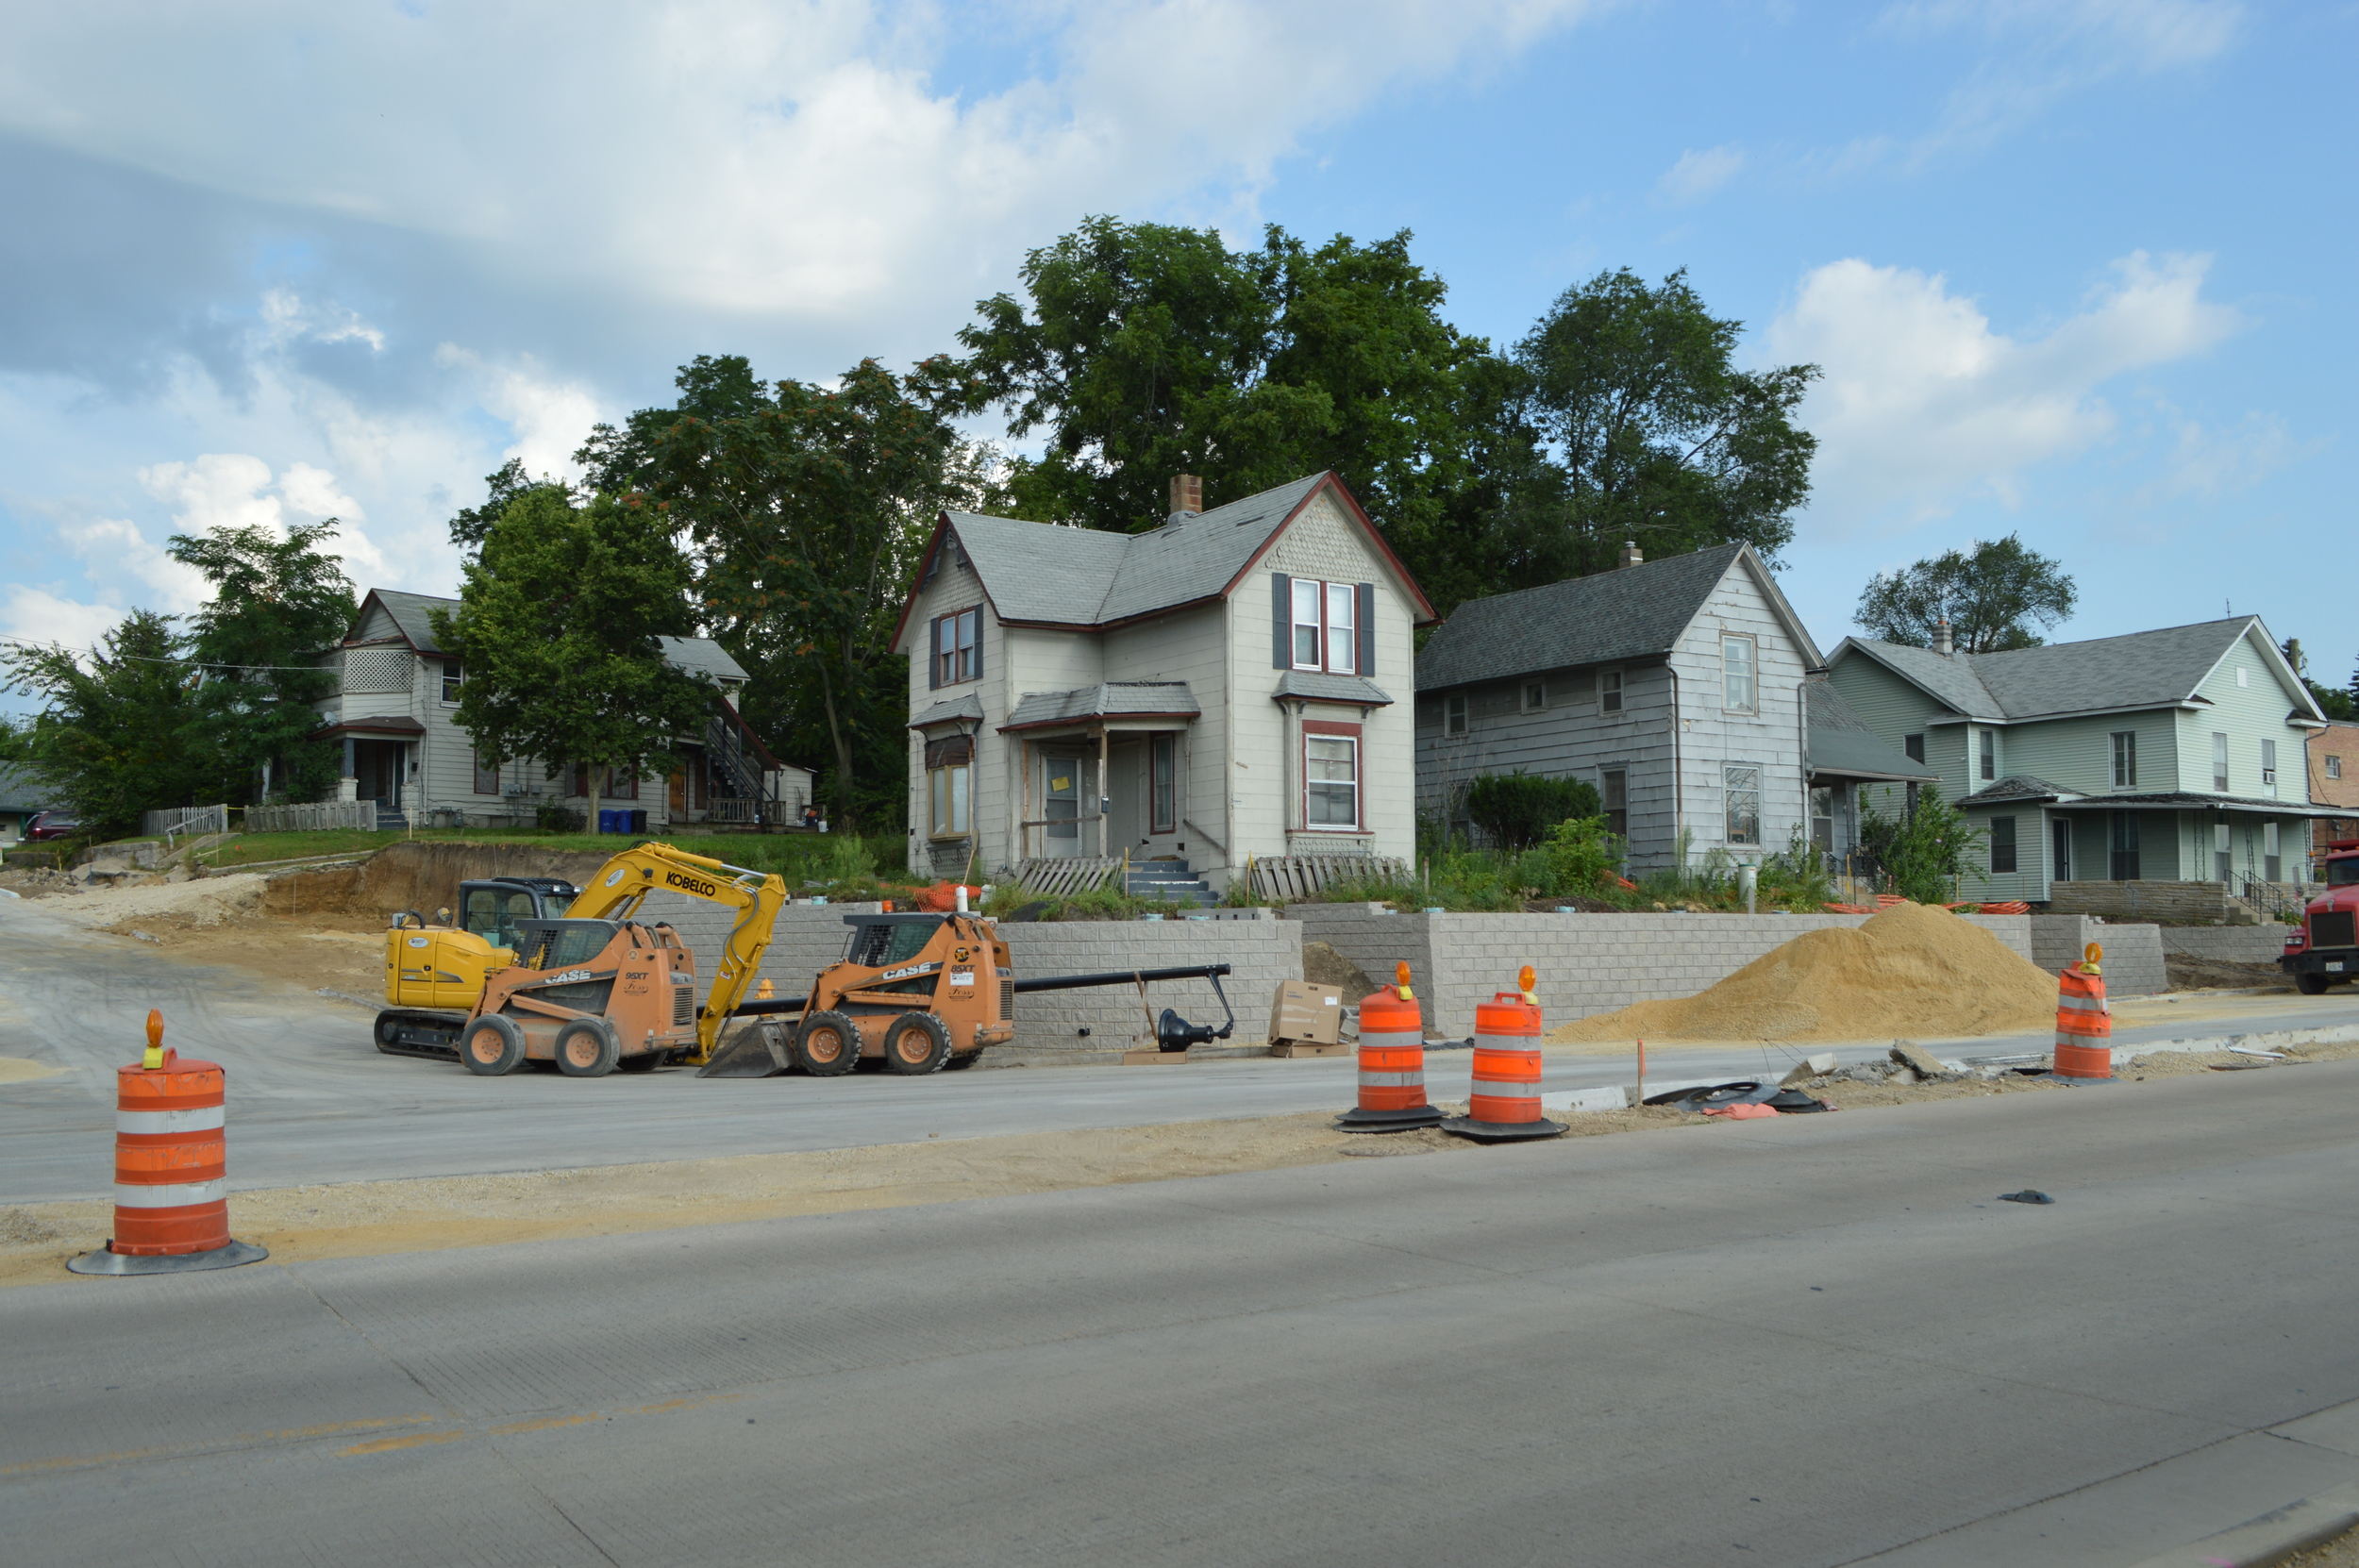 South Main and Lincoln, photo taken Saturday (August 15, 2015). Yard is nonexistent, retaining wall doubled, trees gone, driveway gone (same story for many houses in this stretch of road). Sign on door indicates that house is condemned.